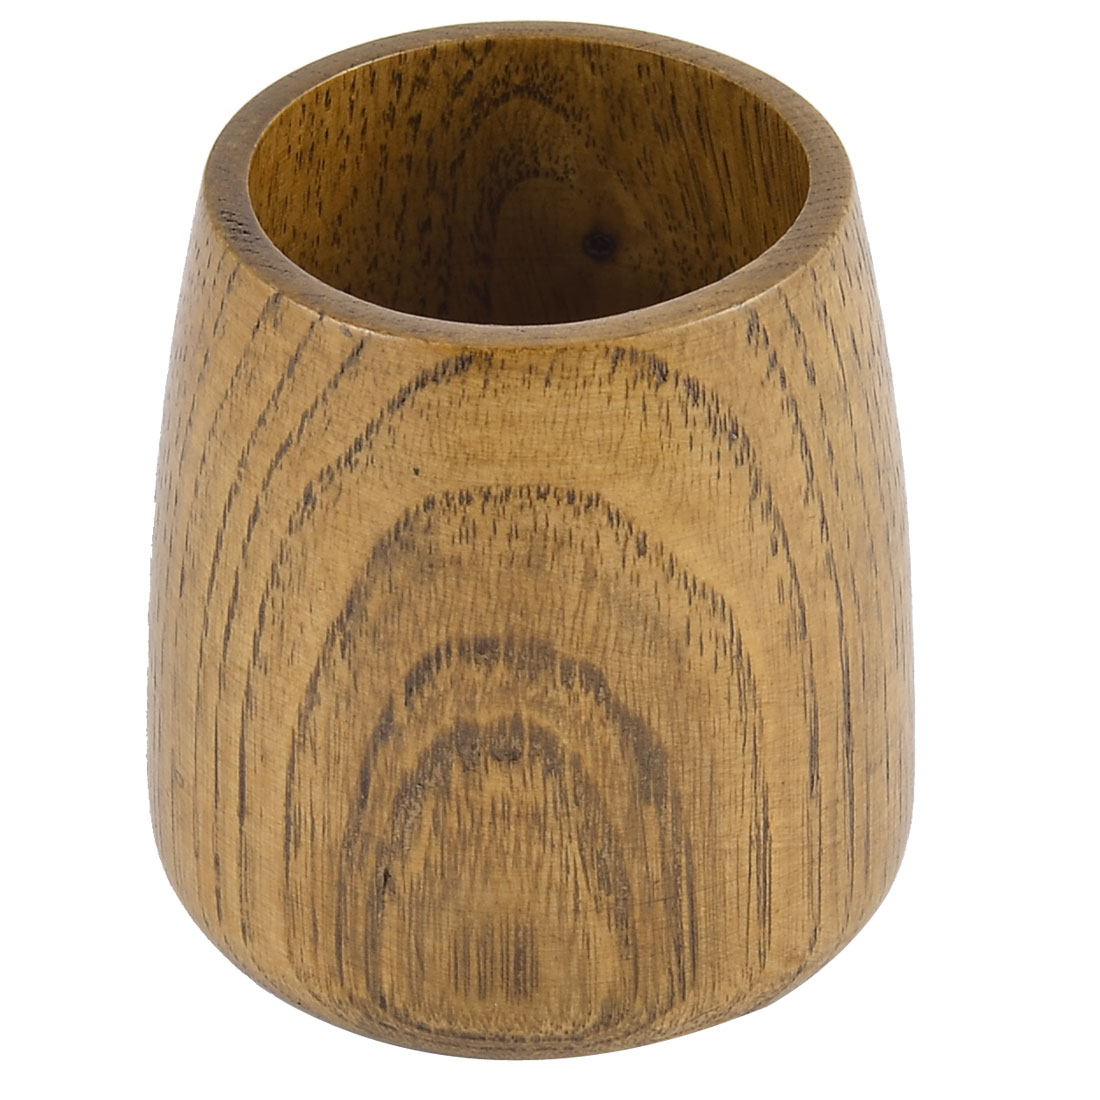 Restaurant Wood Grain Pattern Cylindrical Shaped Smooth Surface Drinking Wine Cup